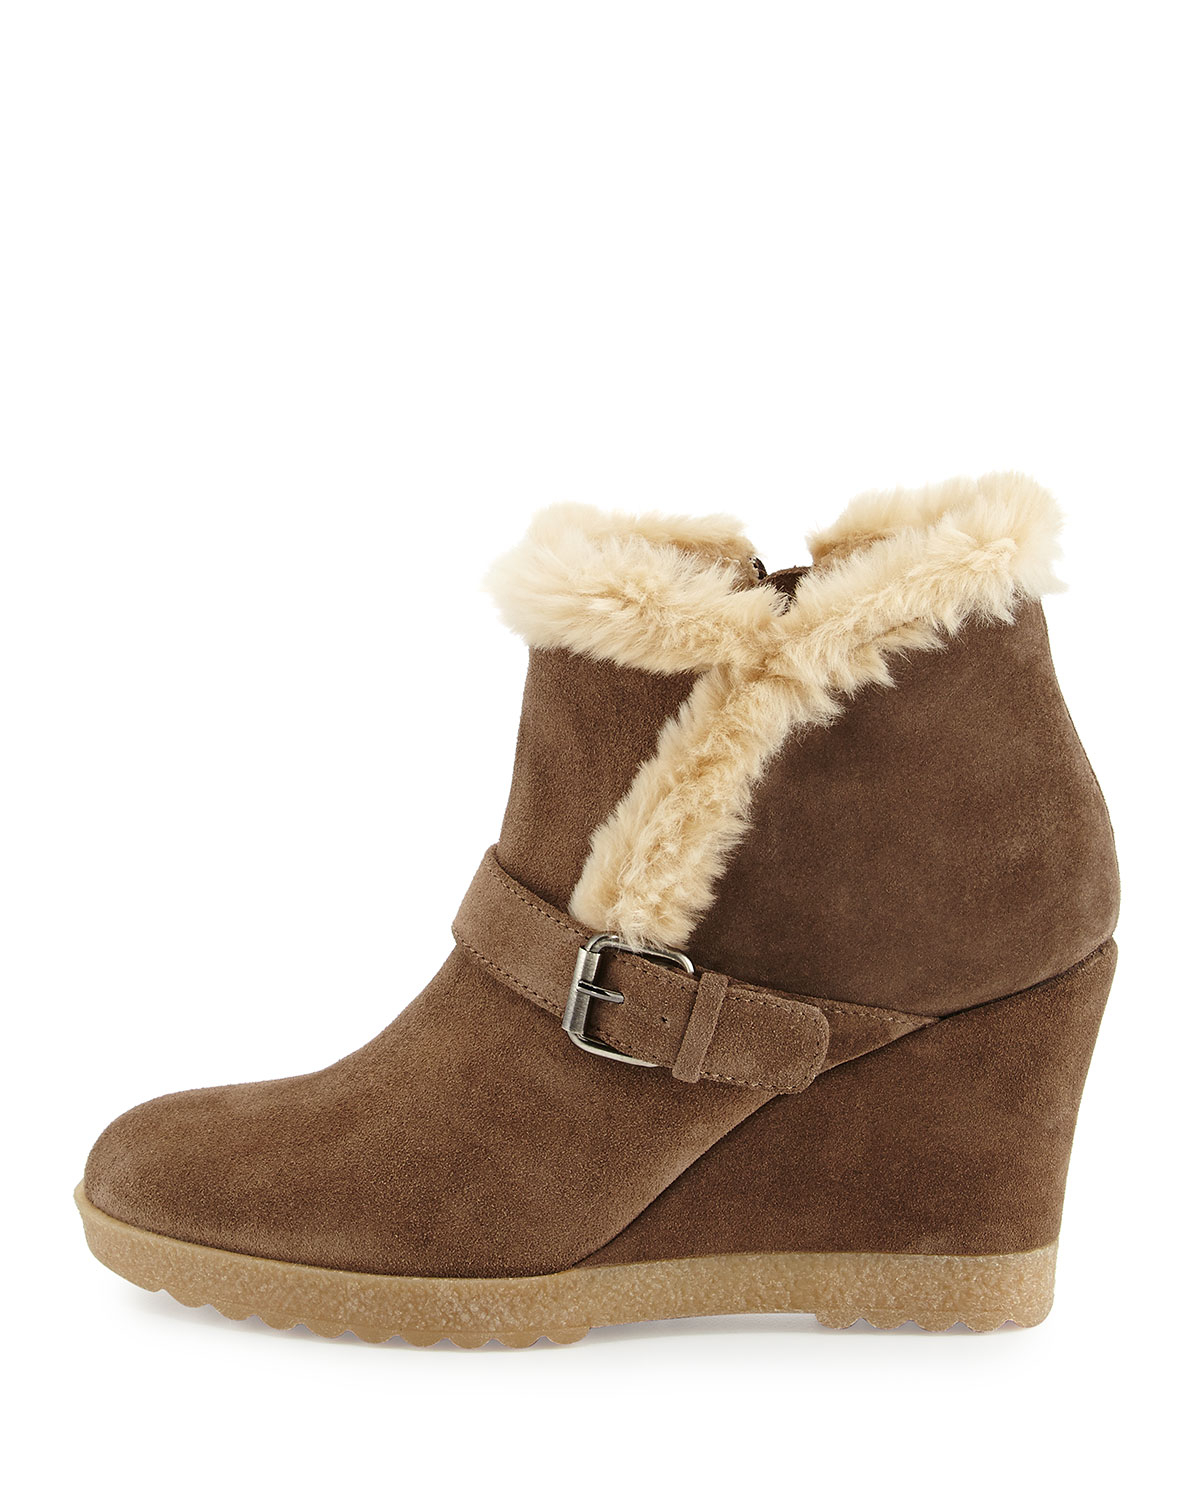 c851aa120 Lyst - Aquatalia Carlotta Faux-Fur Lined Suede Wedge Ankle Boot in Brown